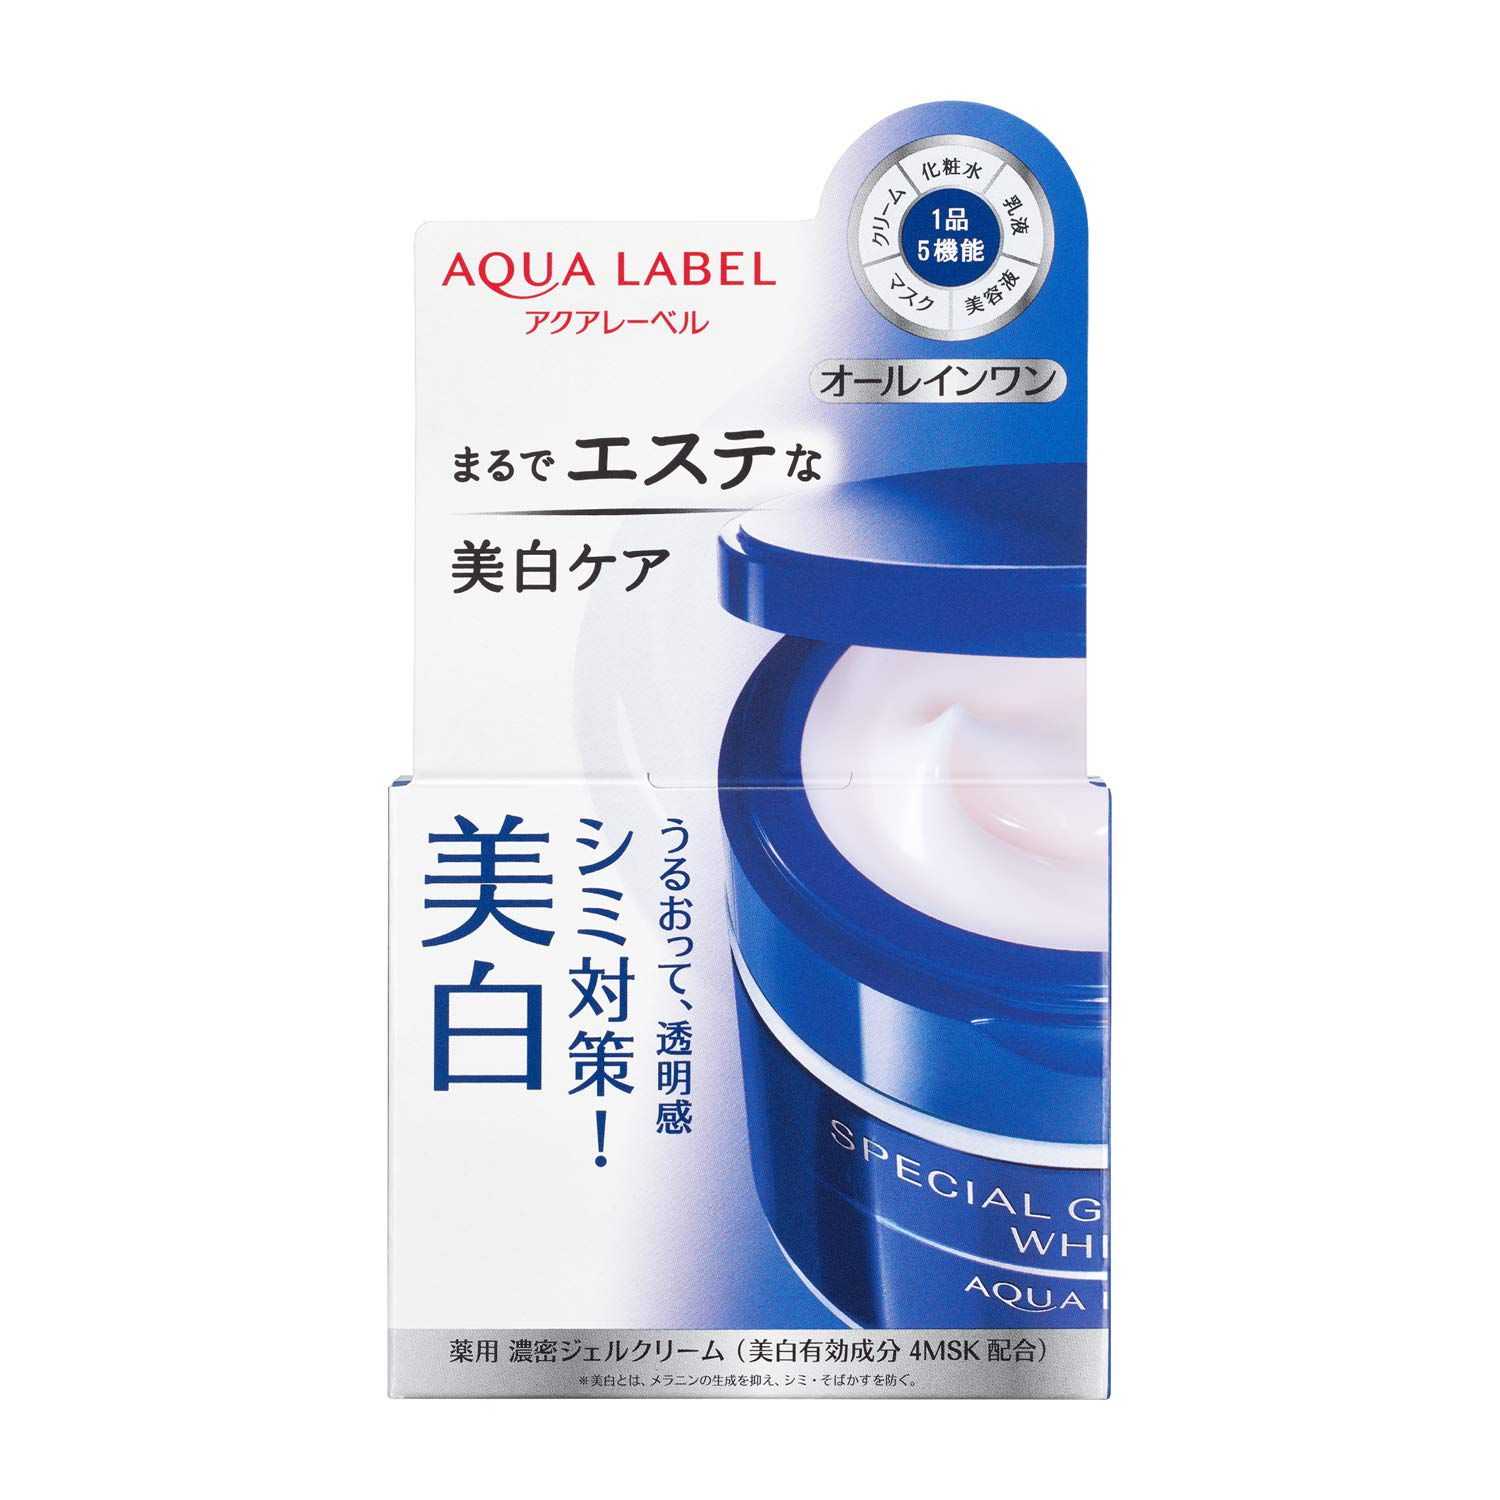 Shiseido Aqua Label Gel Cream White 90g